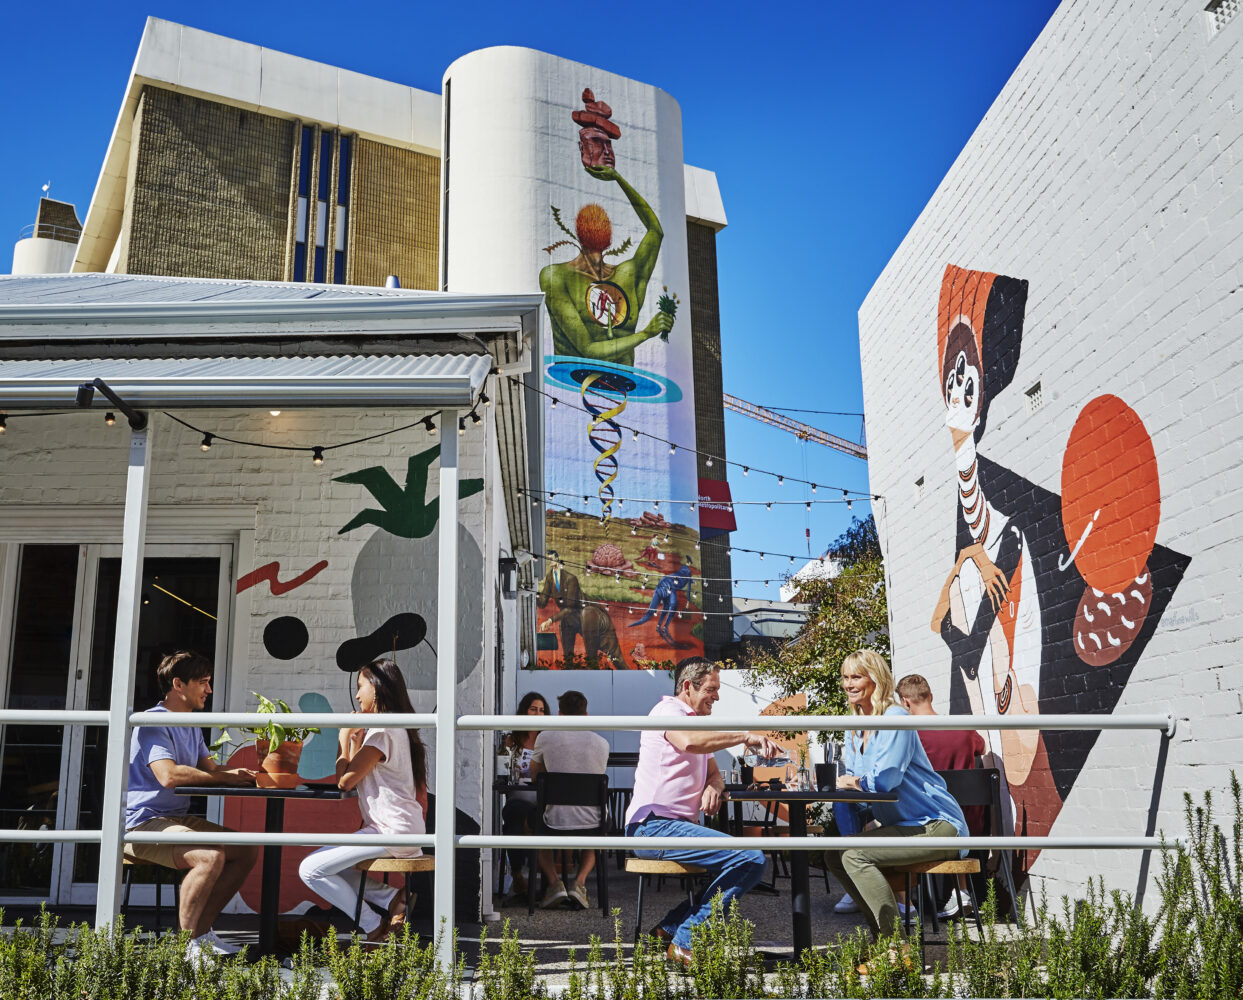 Casual dining, Northbridge cafe with local Urban art in the background.